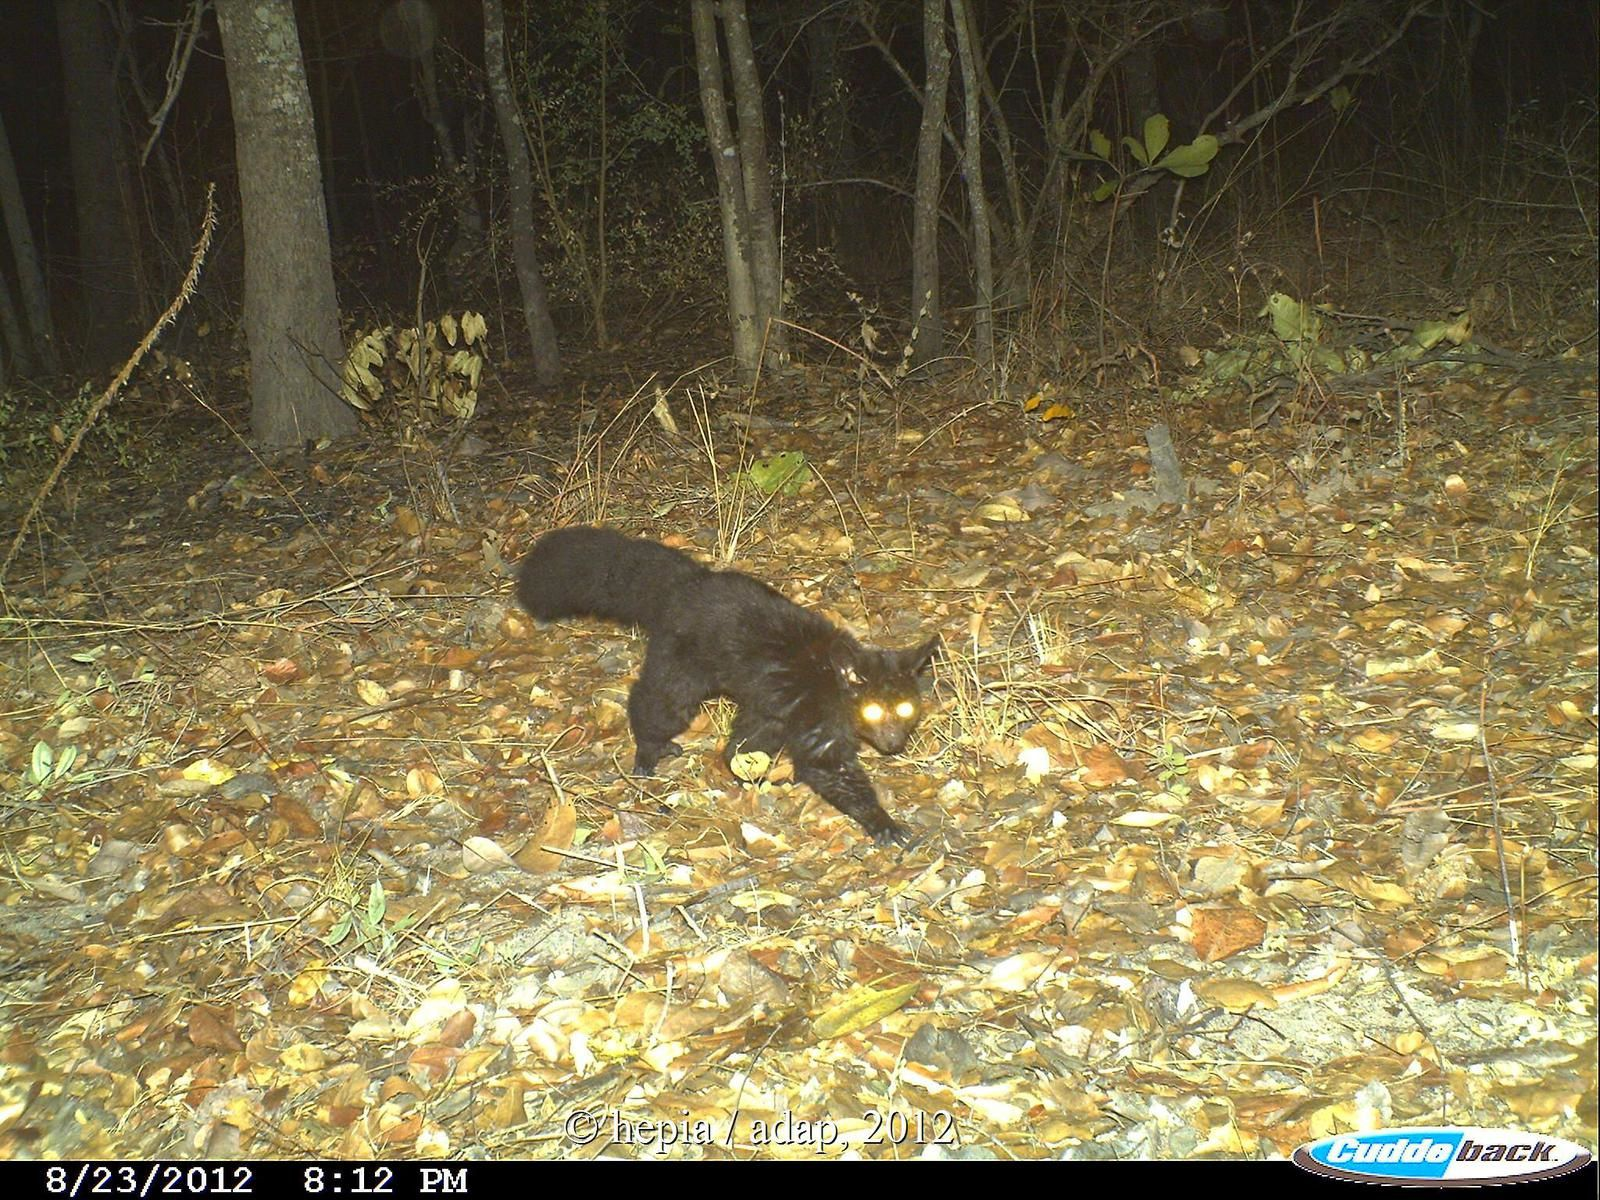 The black morph of the Greater galago captured in Rukwa GR in 2012